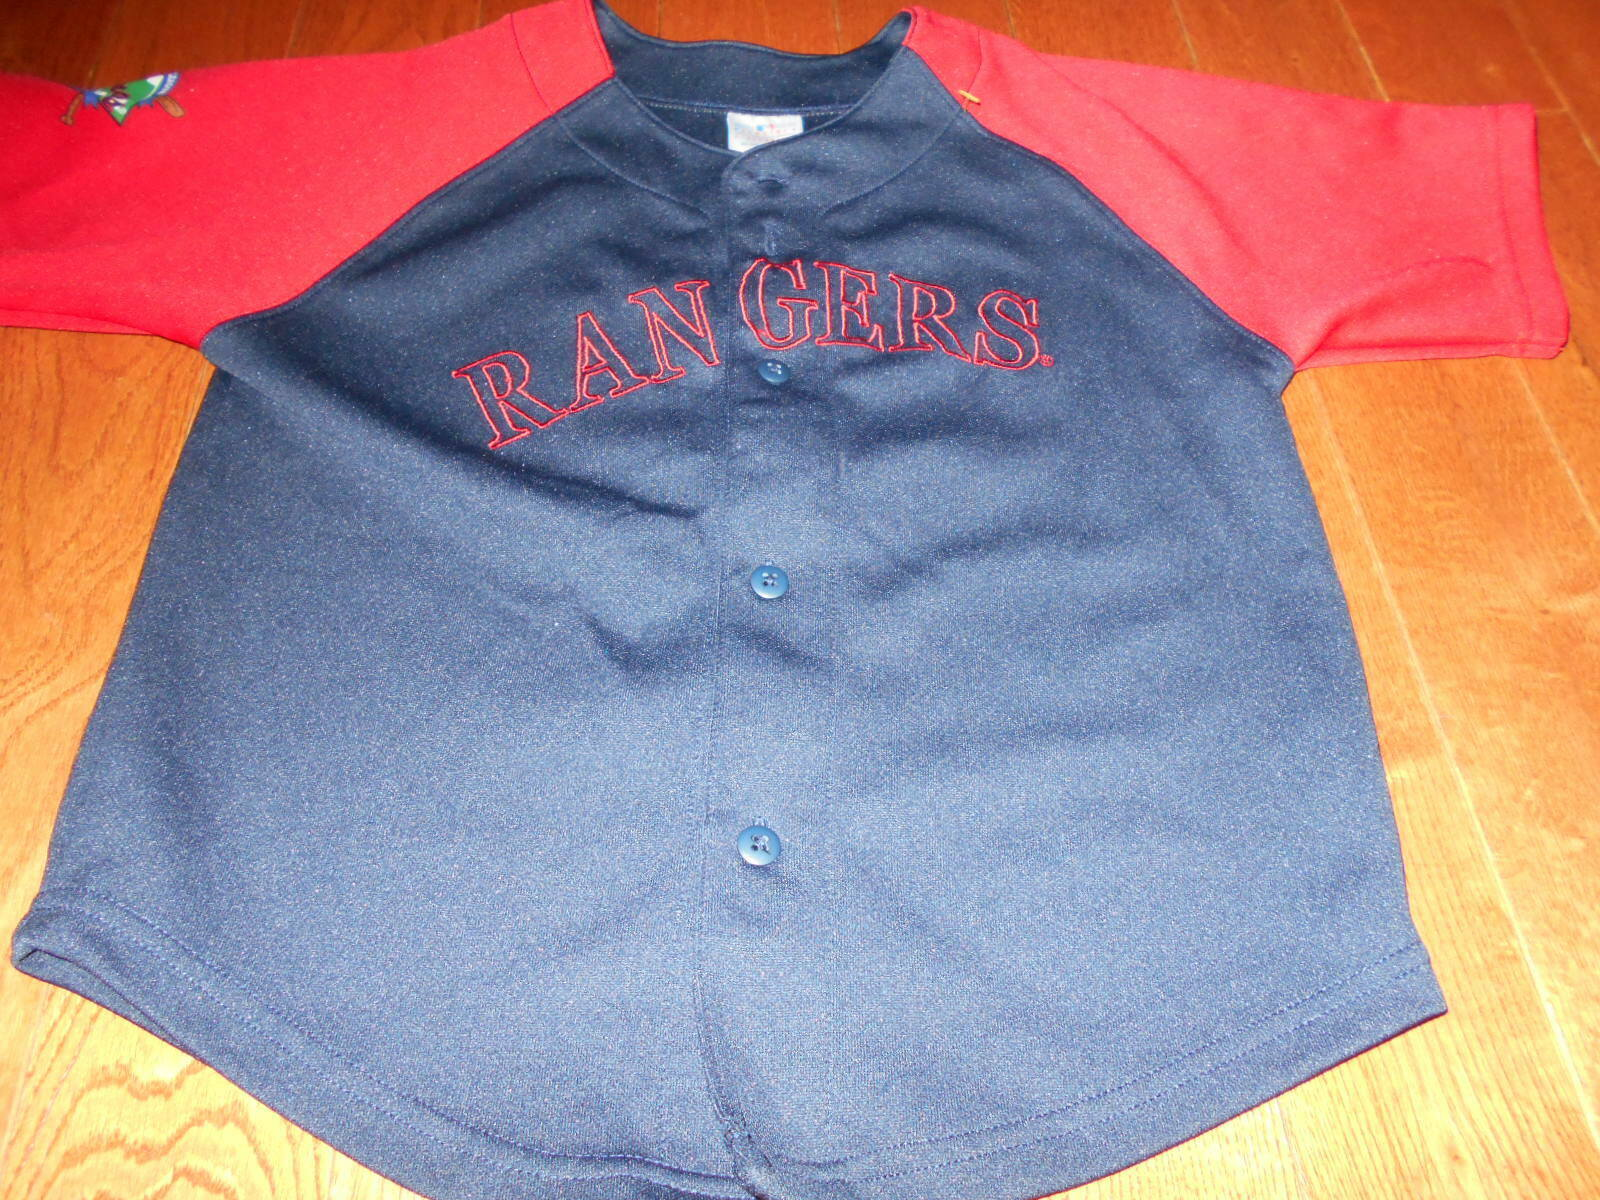 Primary image for (Youth MLB Boys Texas Rangers Scarlet Red Jersey Navy Blue size 7 Baseball shirt